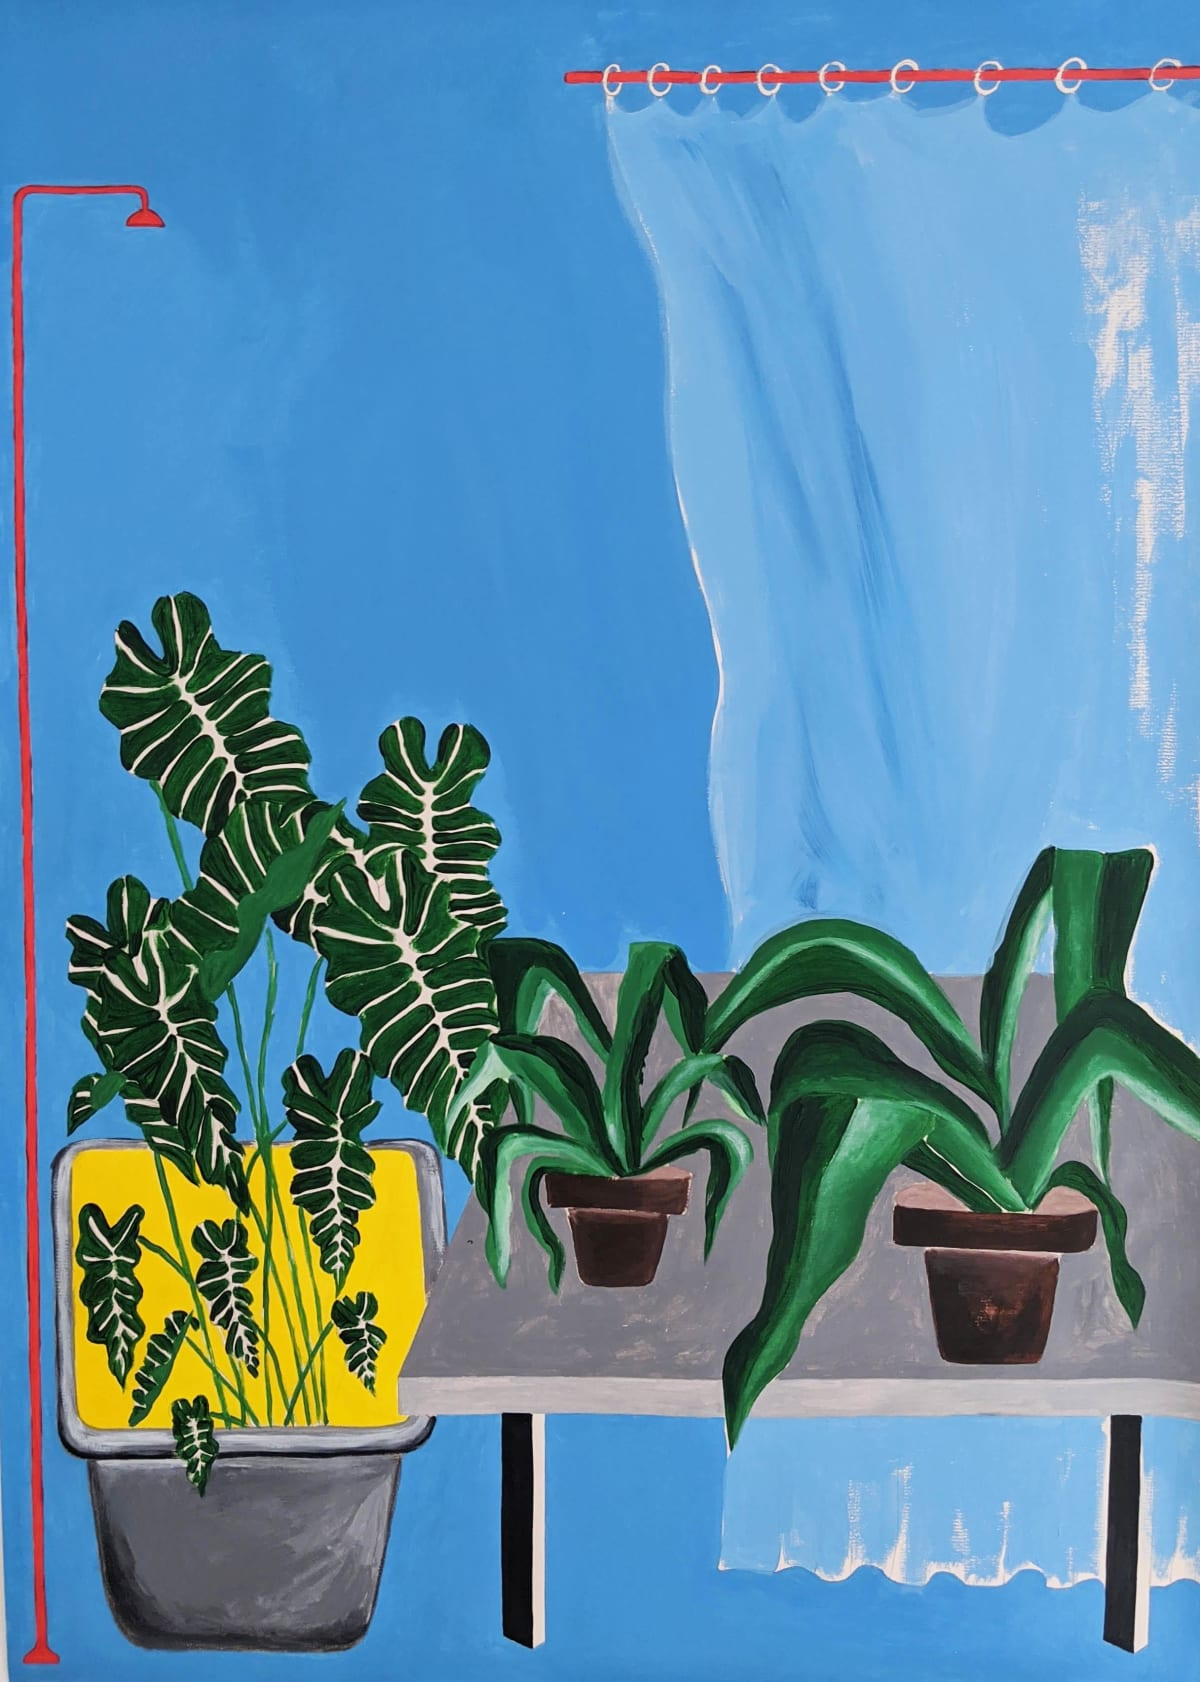 Cathy Tabbakh Not so Fresh Air Today, 2020 Ink and Acrylic on Paper 50 x 70 cm 19 3/4 x 27 1/2 in